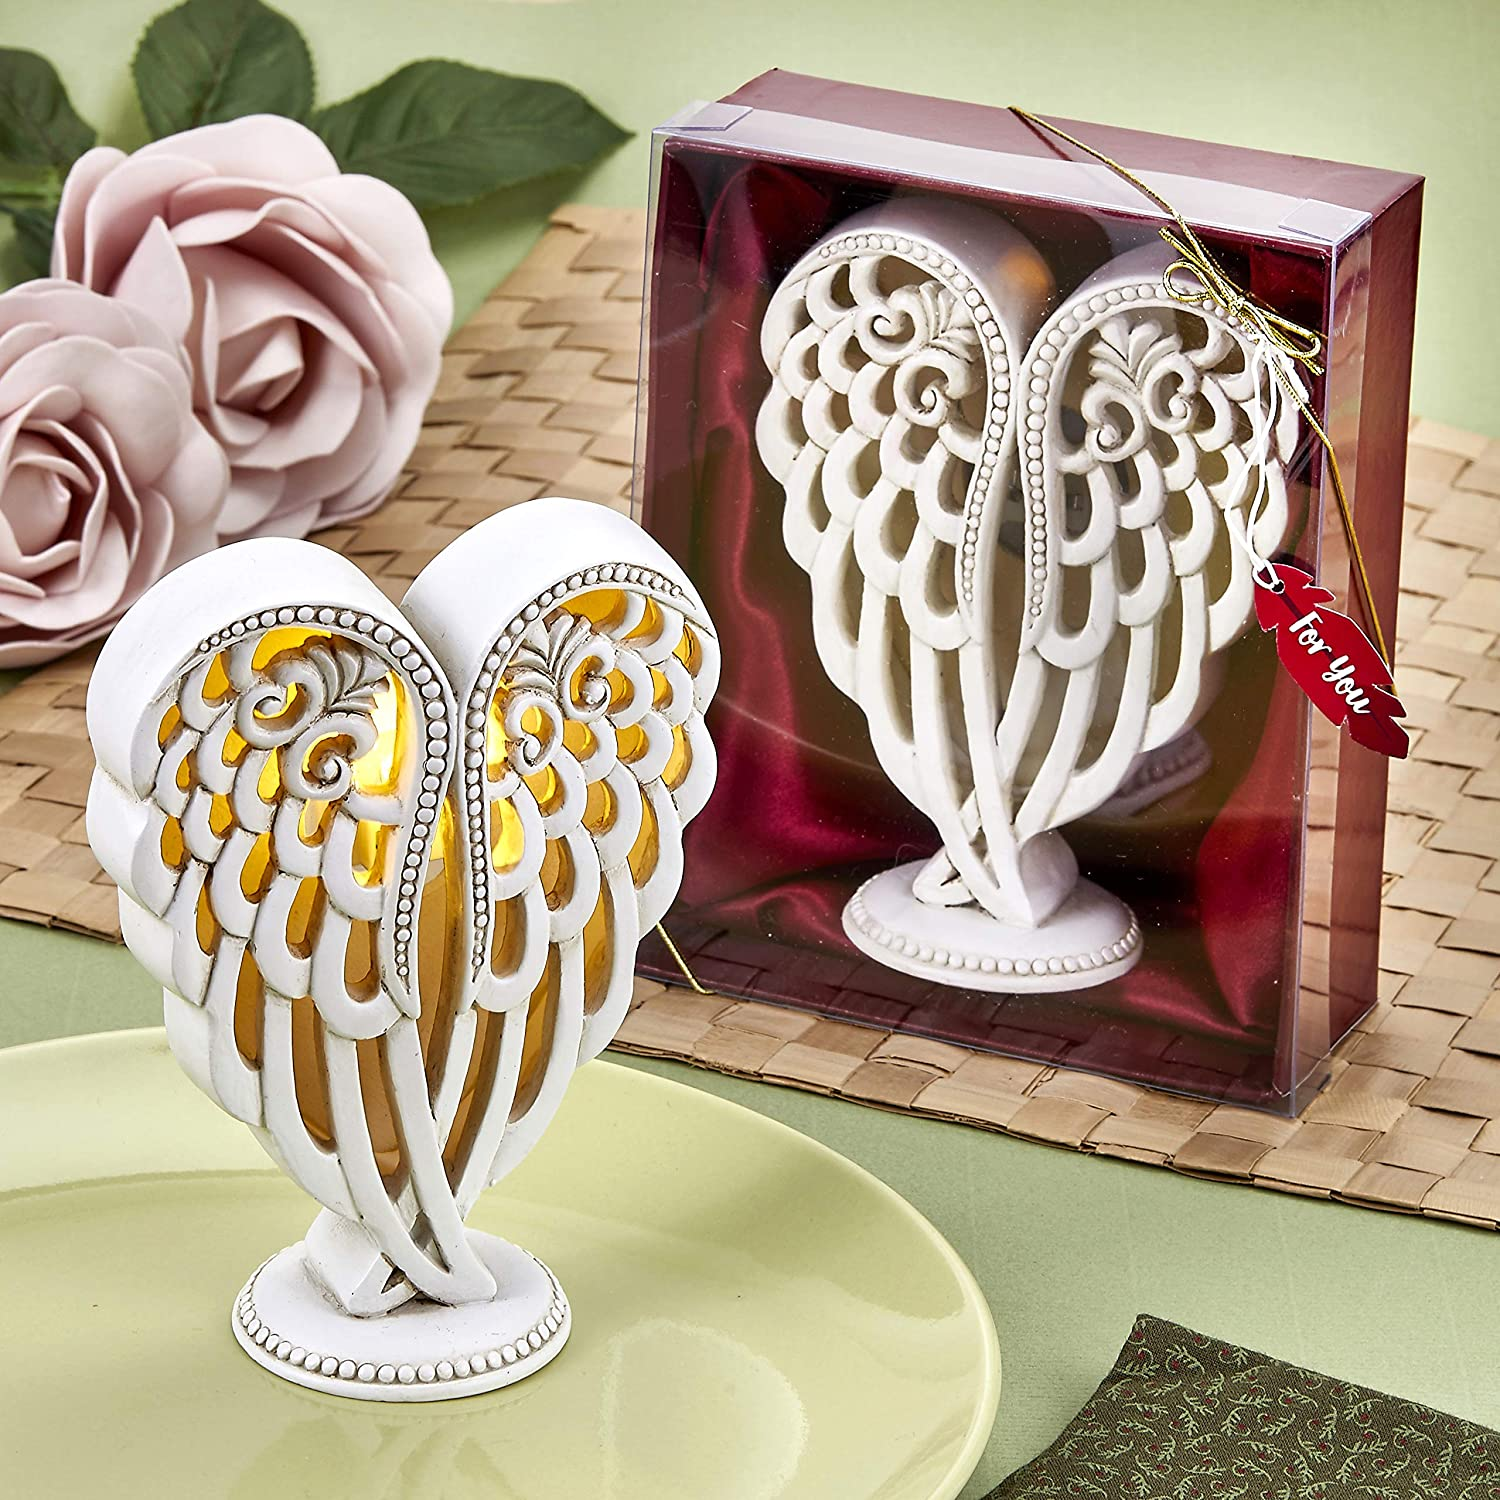 FASHIONCRAFT 8246 Angel Wings Design Statue with Light up LED, Angel Wings Figurine, Communion Favor, Baptism Favor - Home Décor